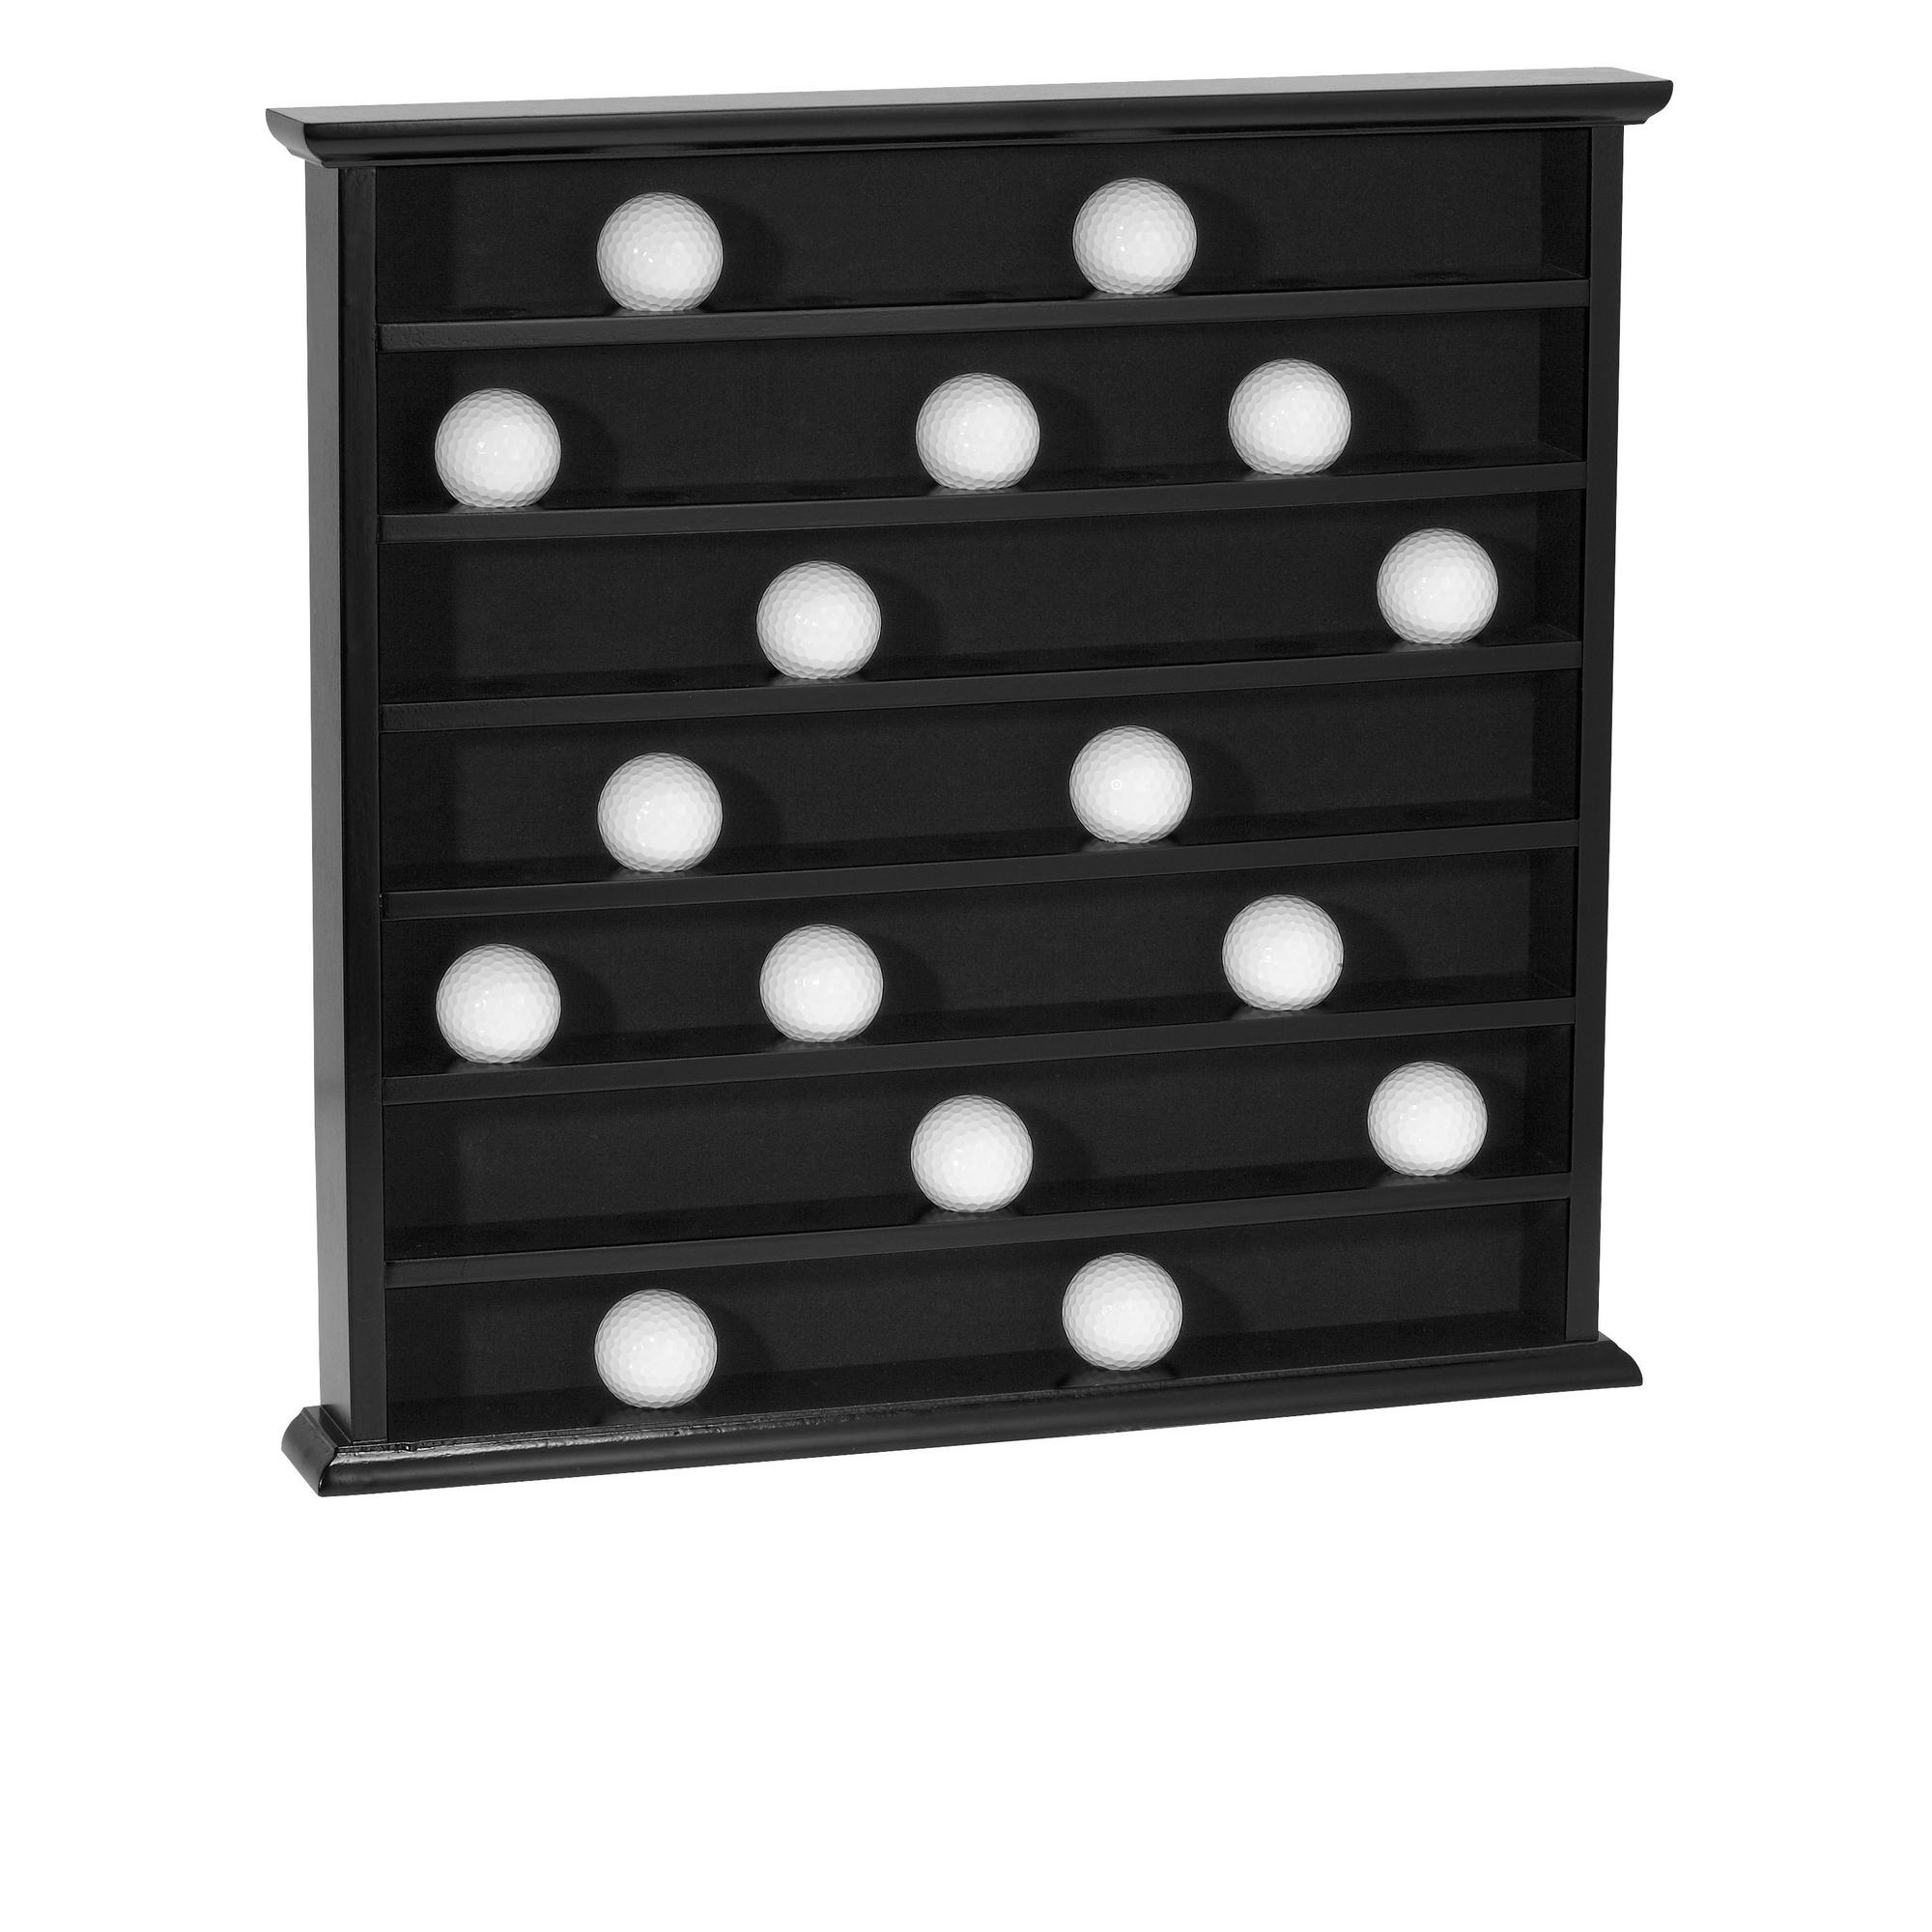 49-Hole Ball Cabinet